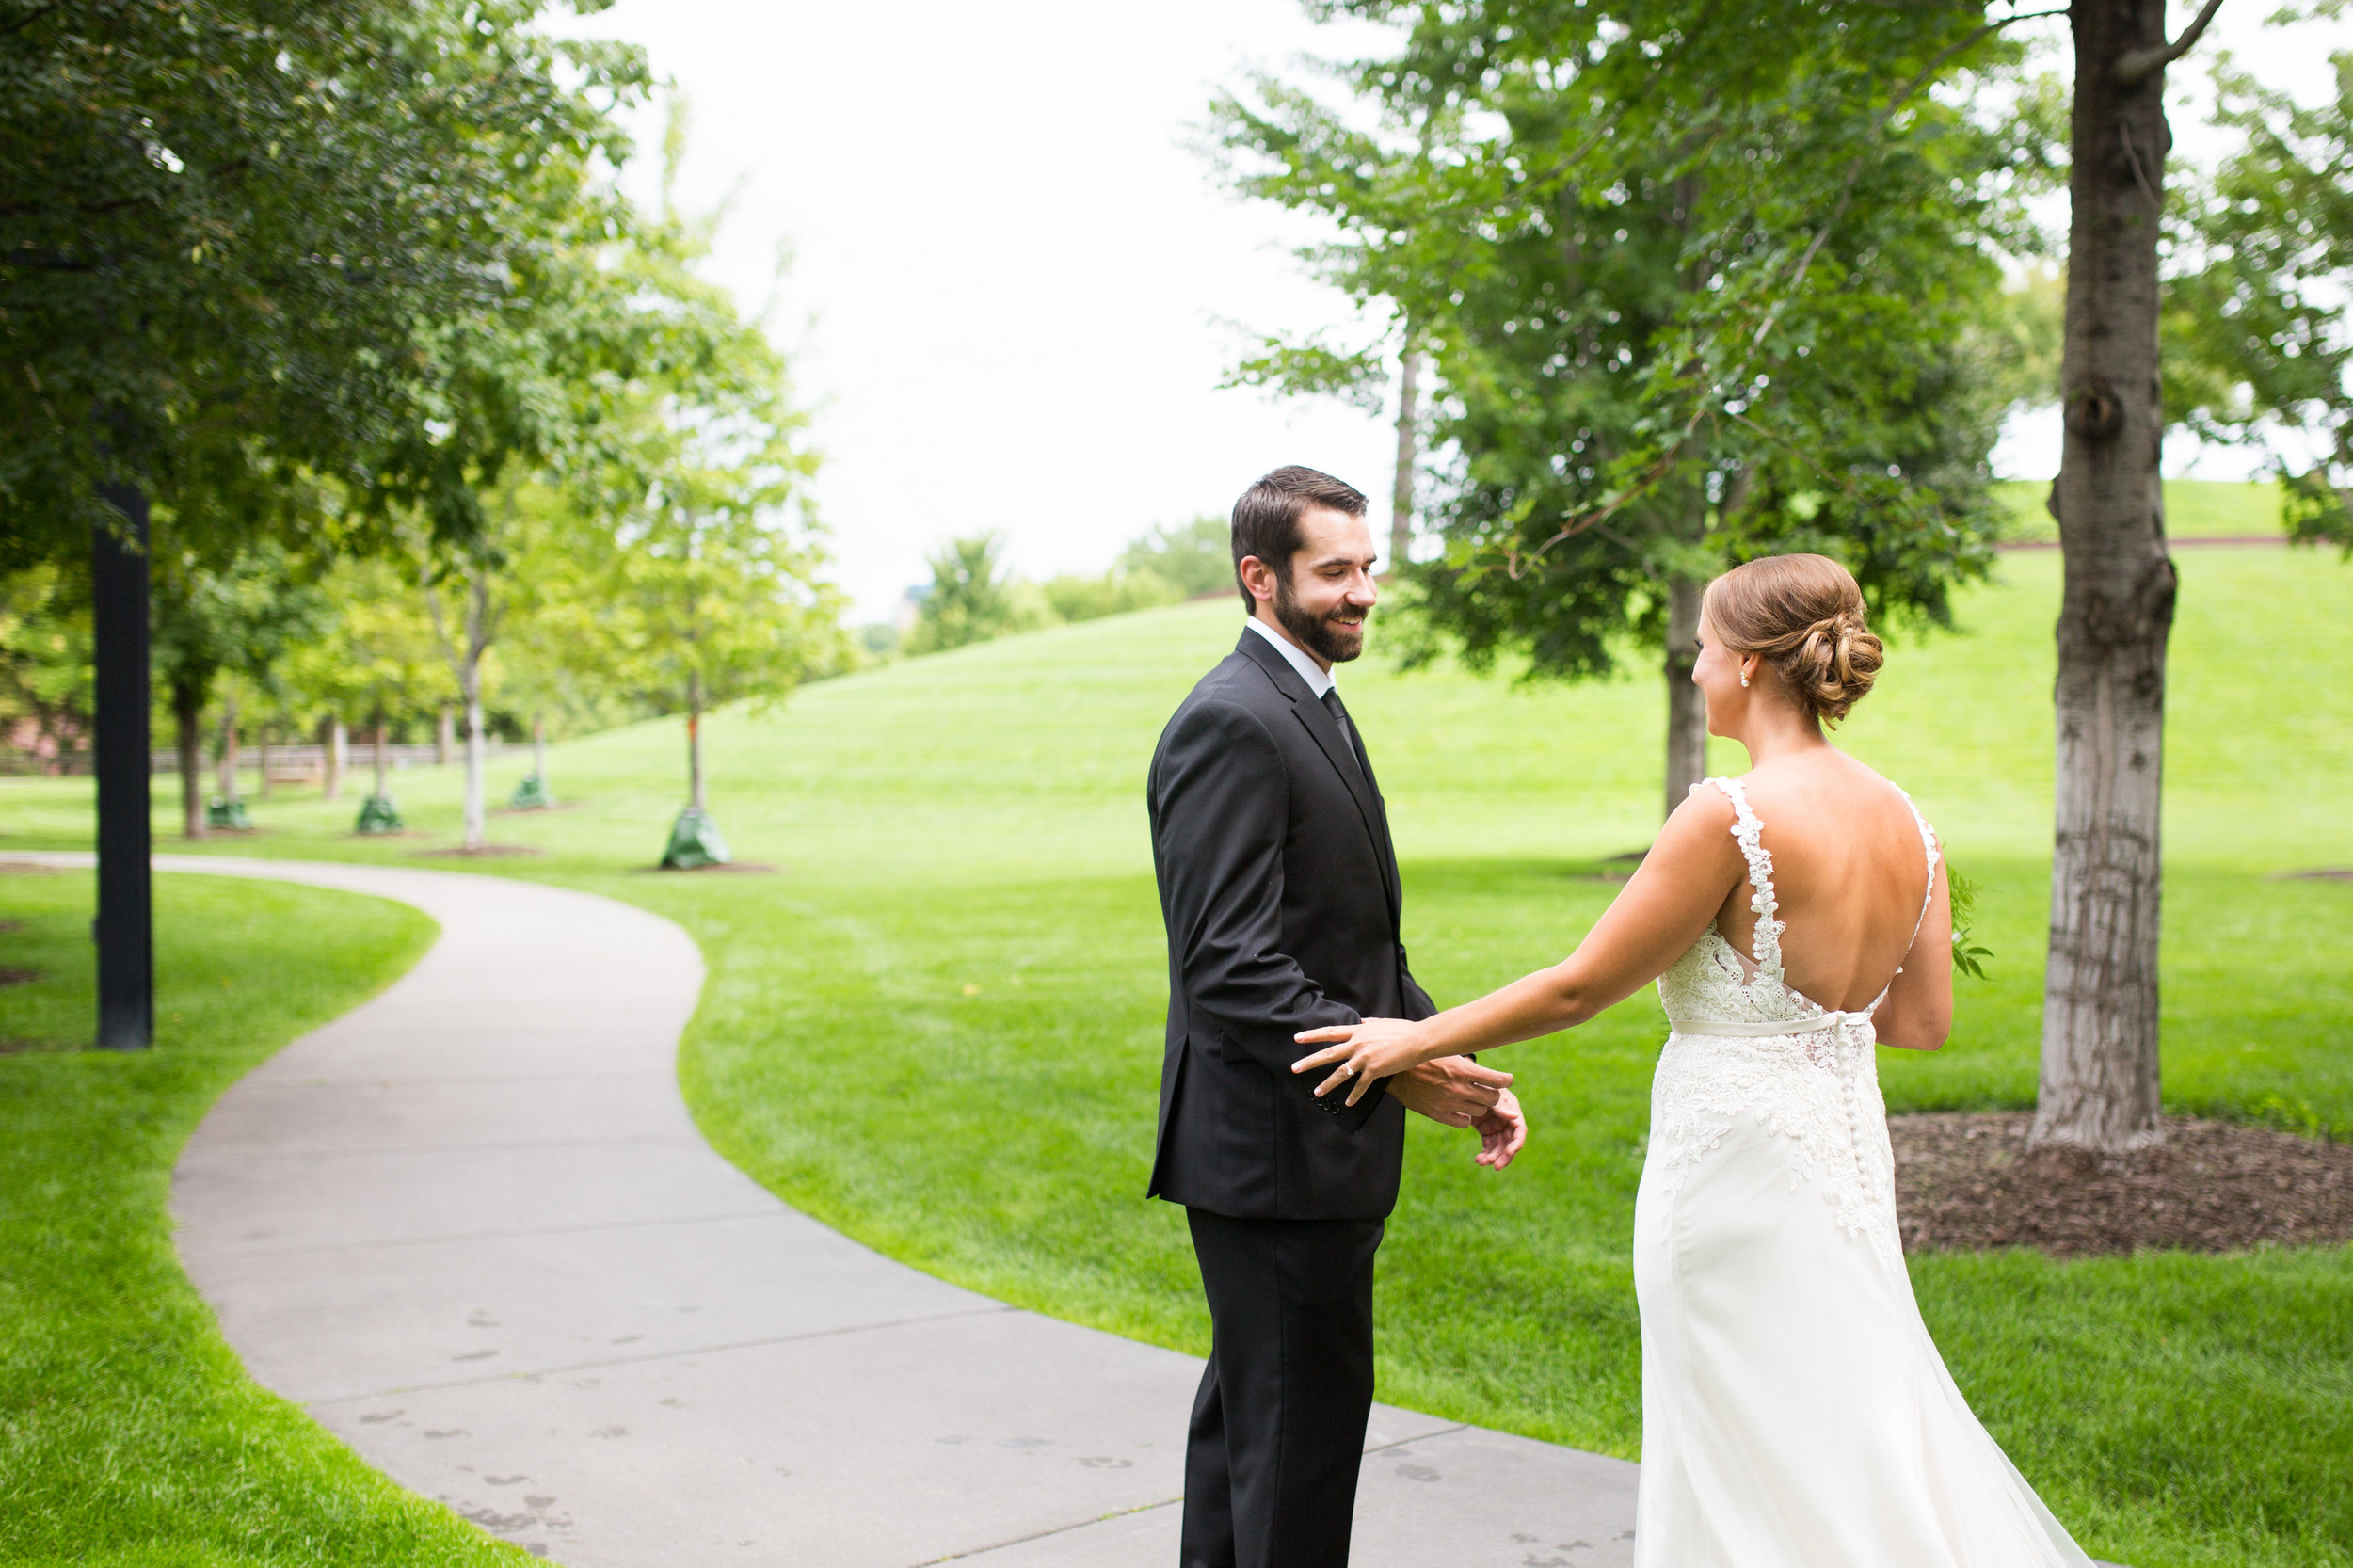 Kaylie + Travis | Sixpence Events wedding planner in the midwest | Studio KH photography | first look in the park